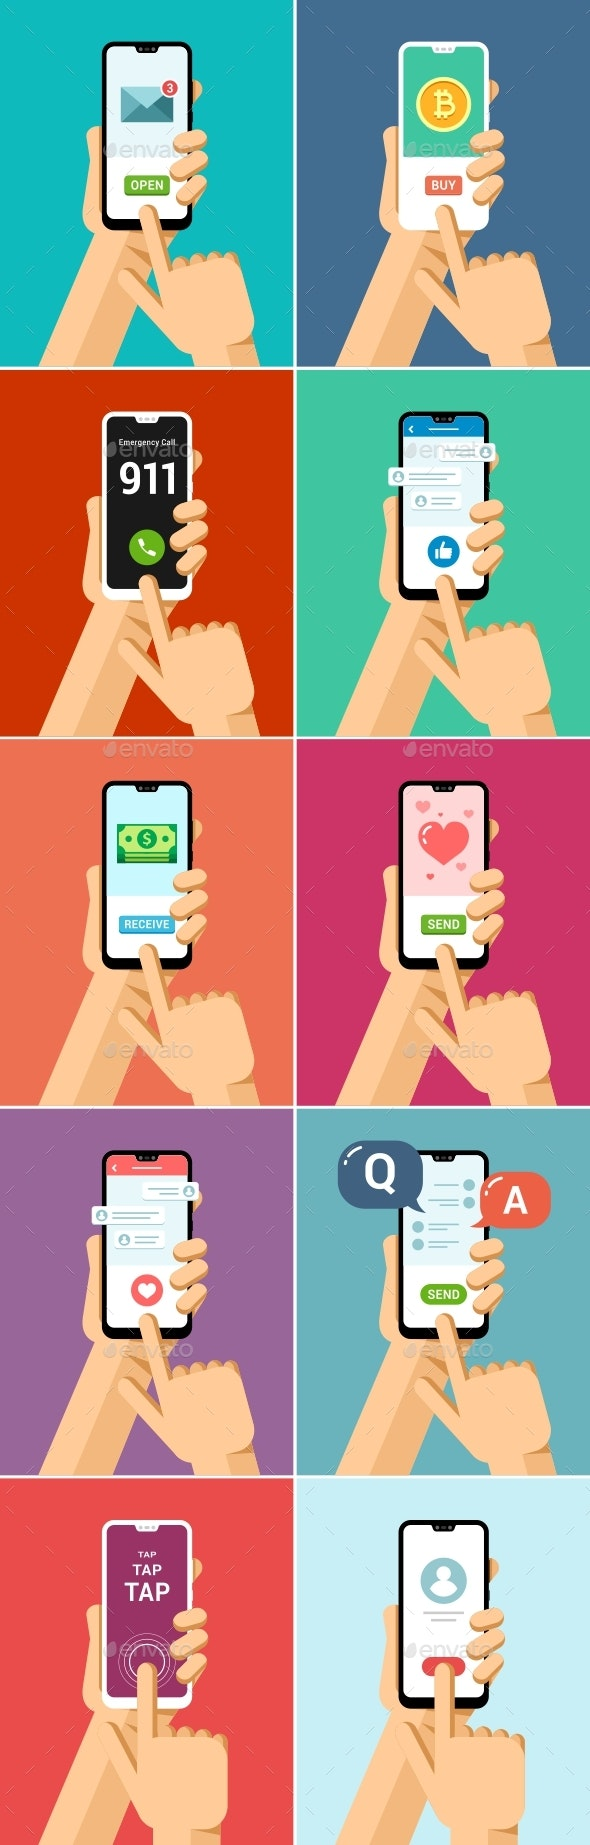 Phone in Hand Mock-Up Flat Vector Set 1 - Communications Technology